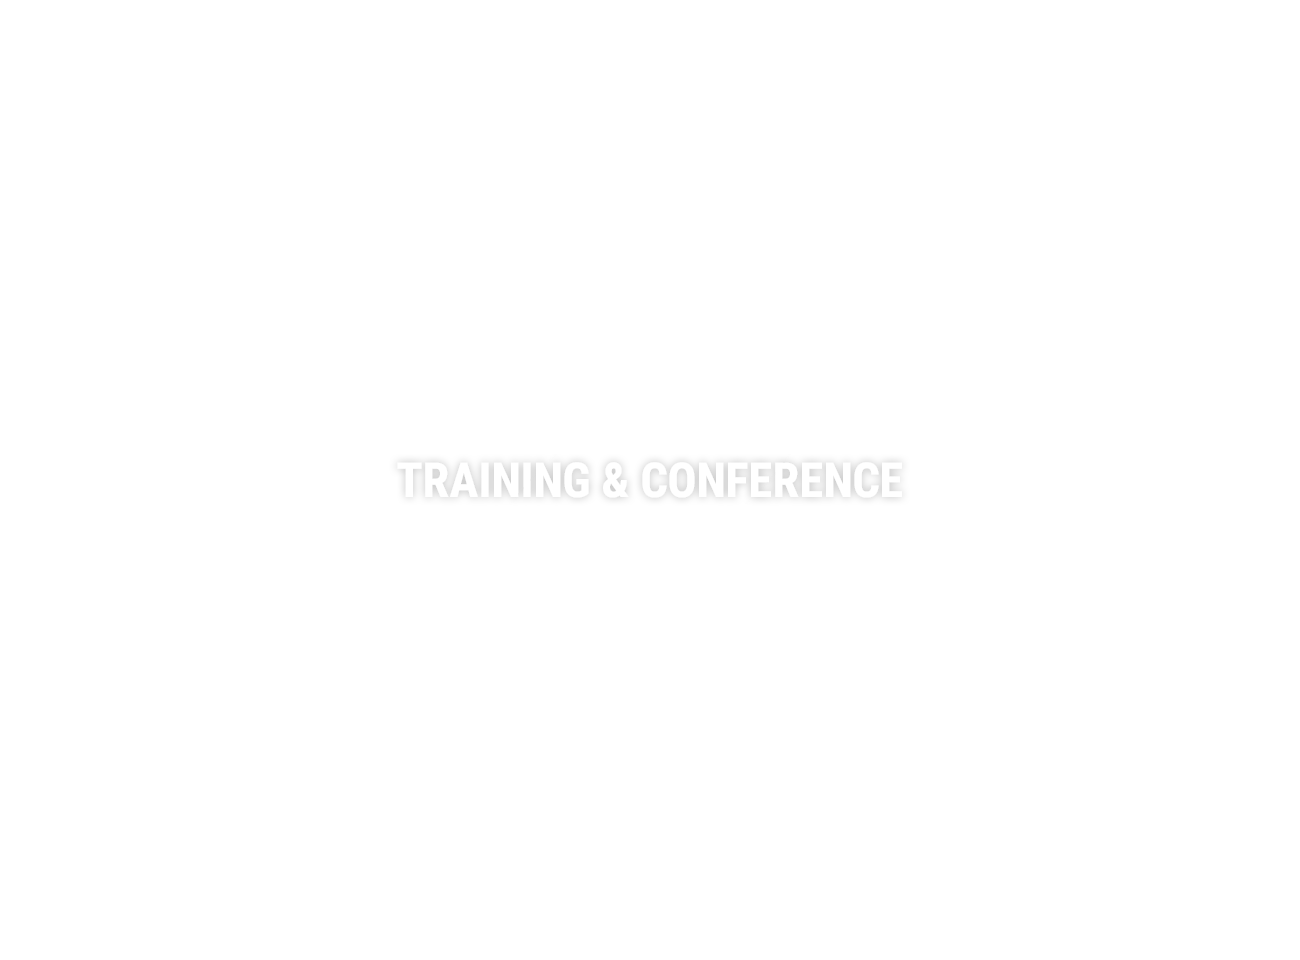 TRANING & CONFERENCE